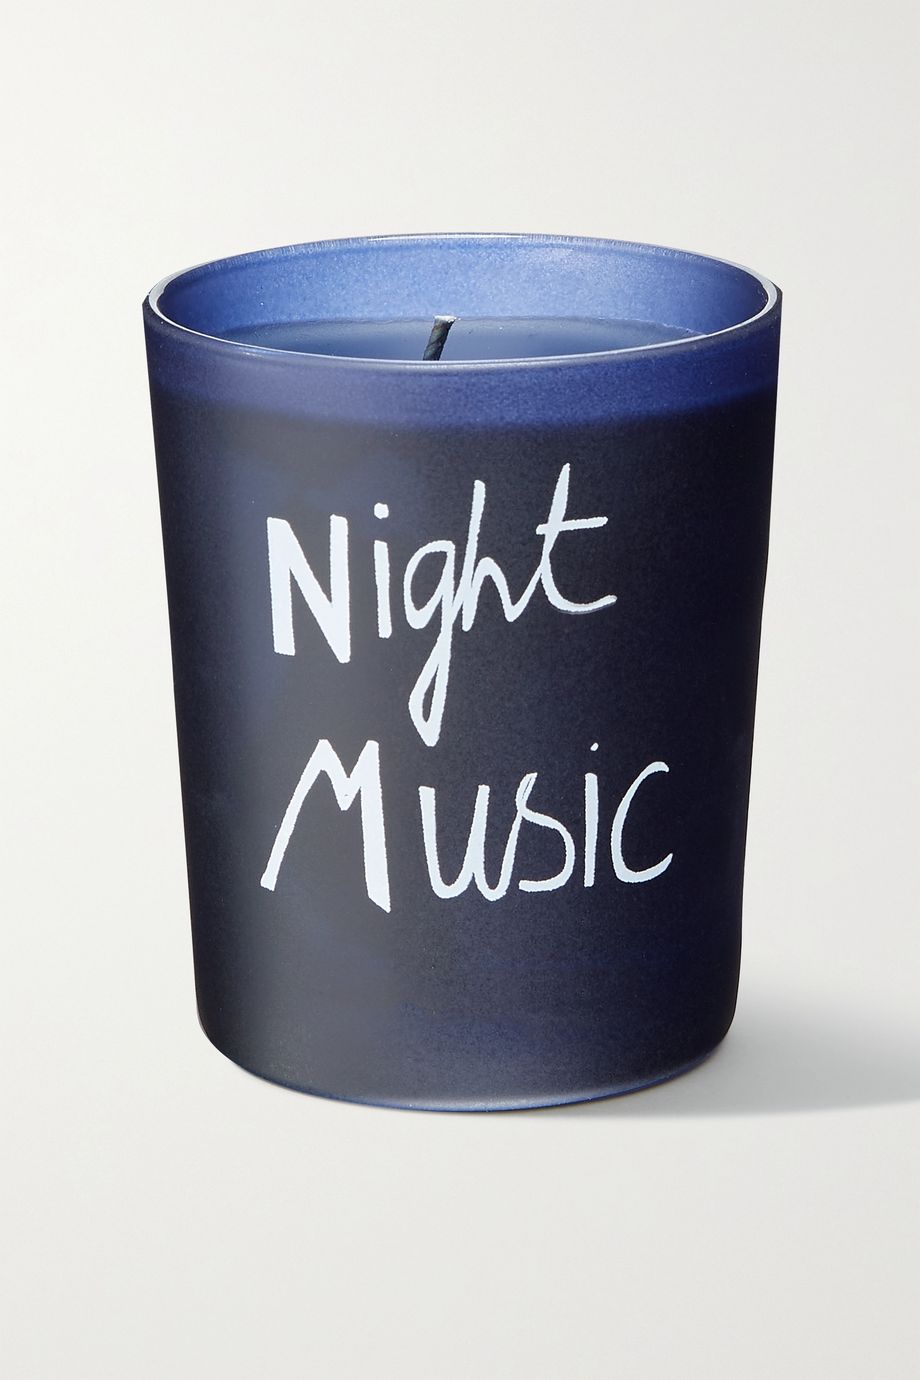 Bella Freud Parfum Night Music Duftkerze, 190 g